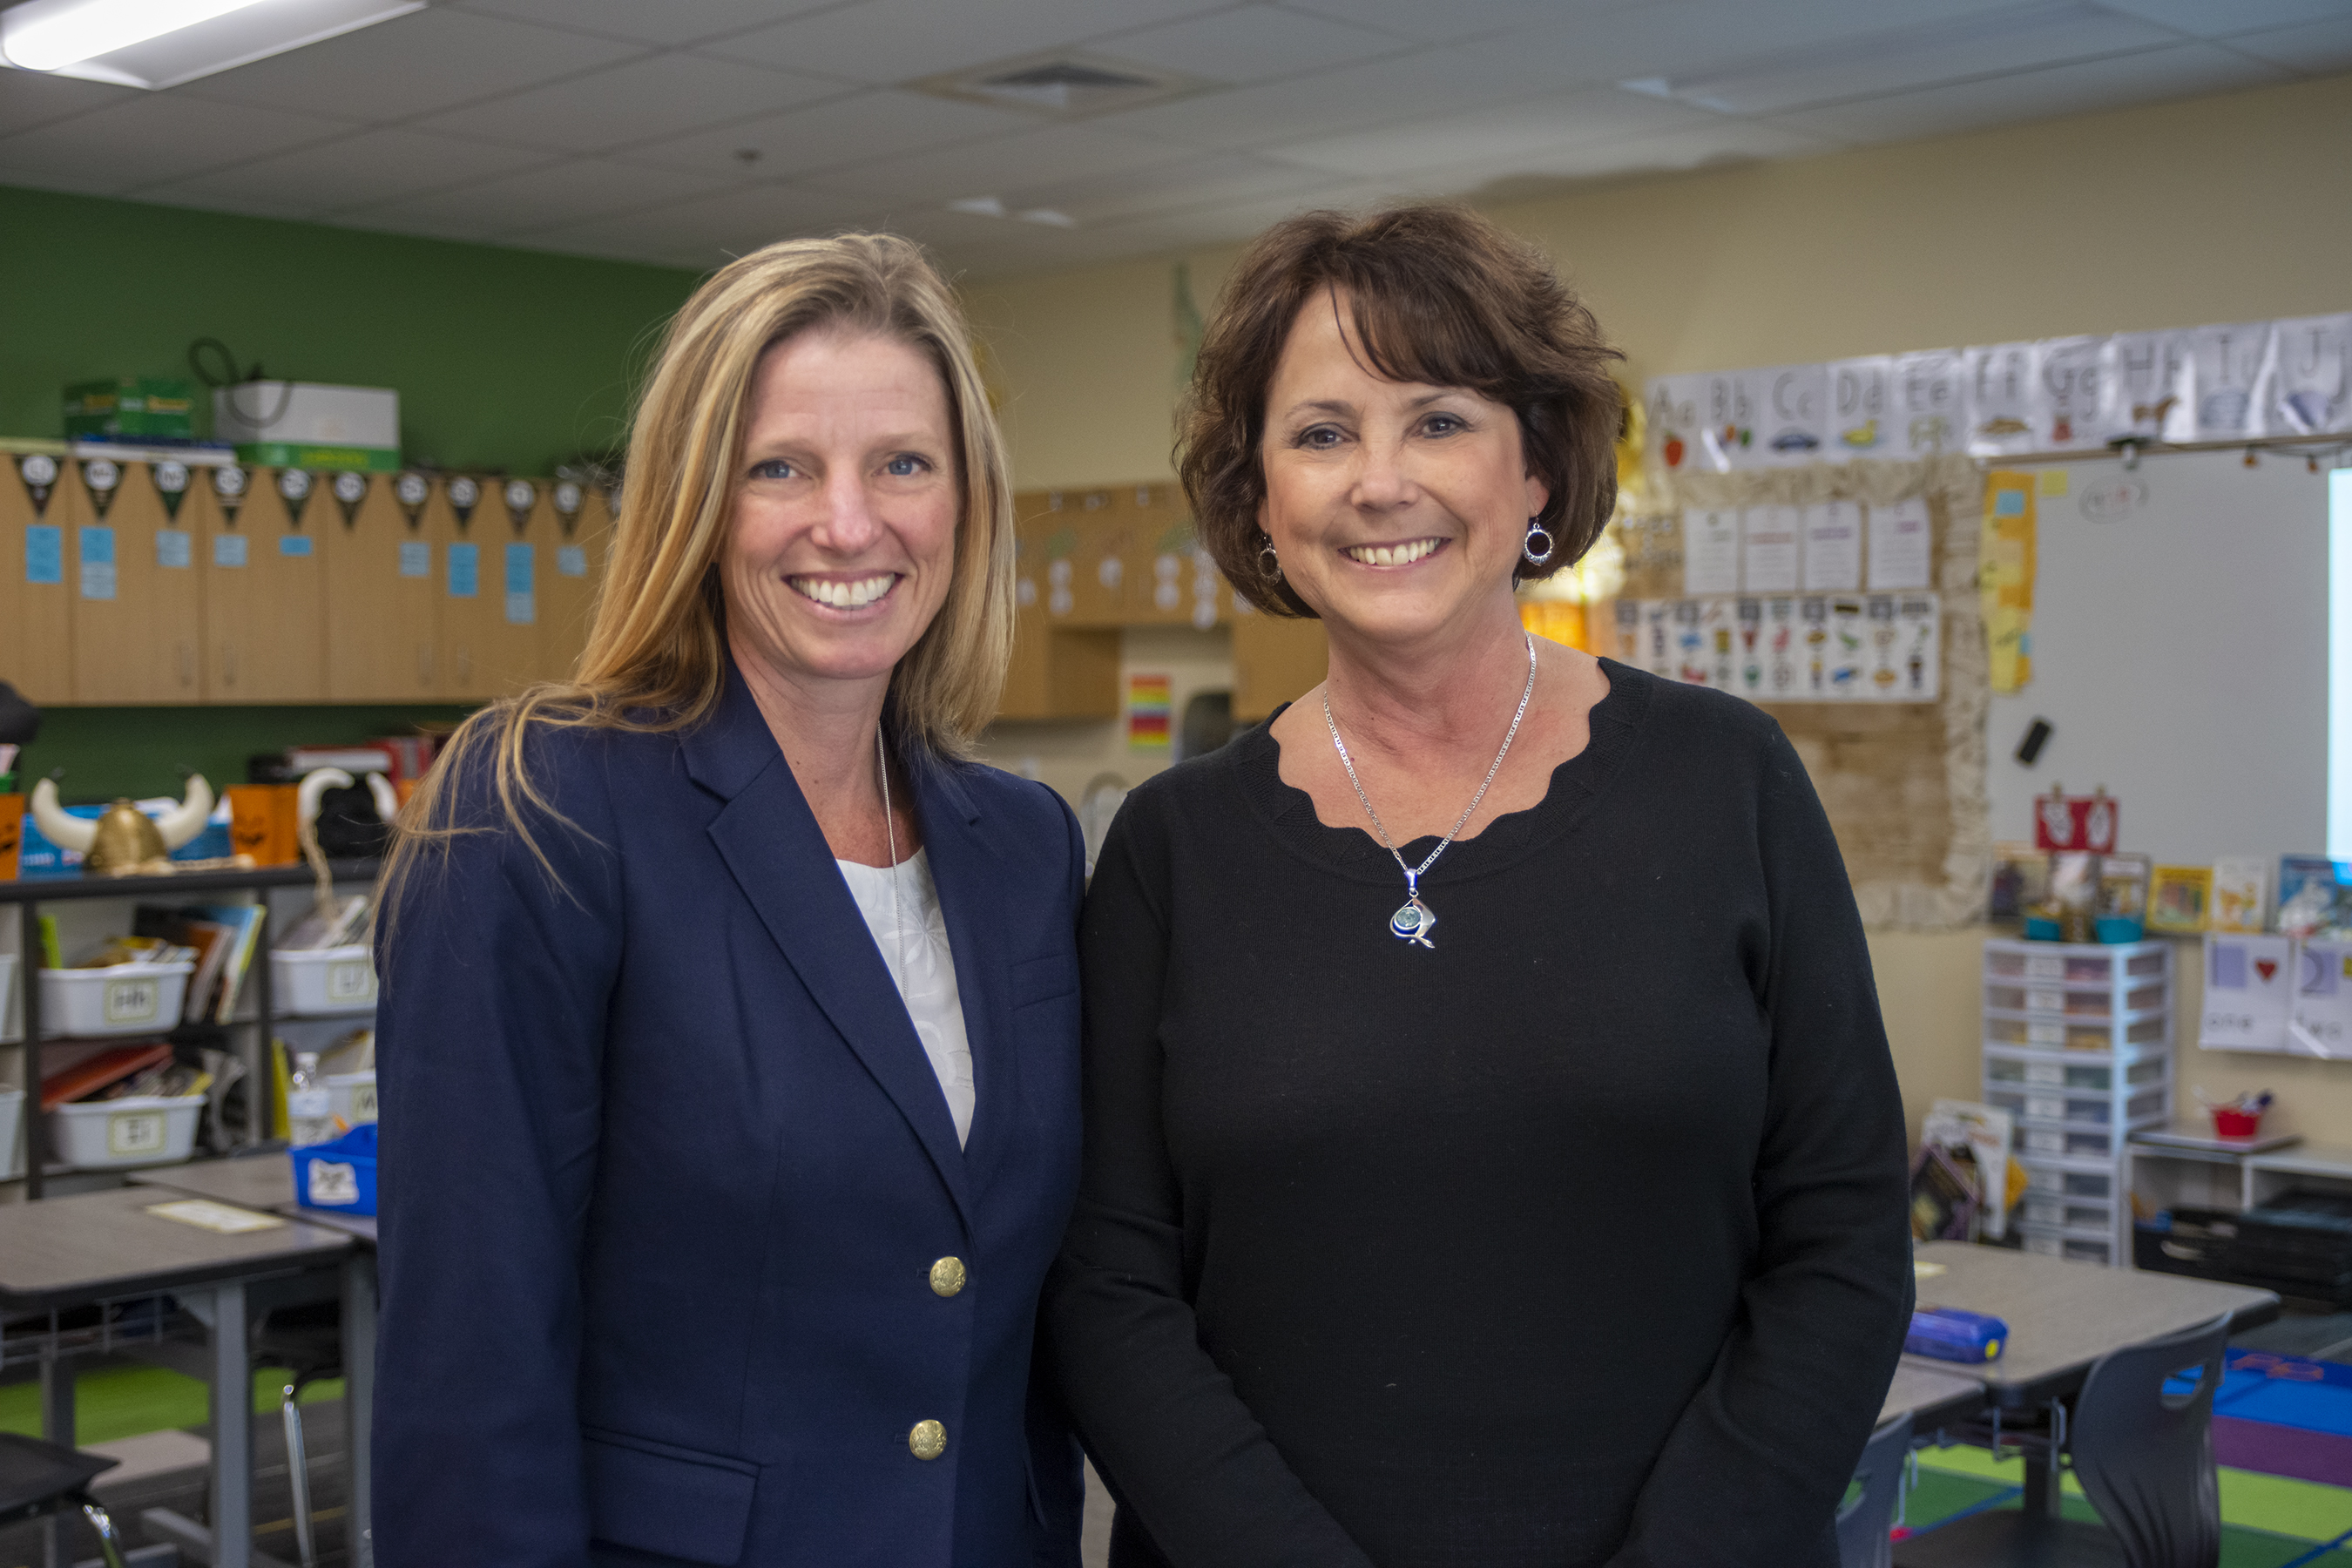 Two researchers pose in a children's classroom